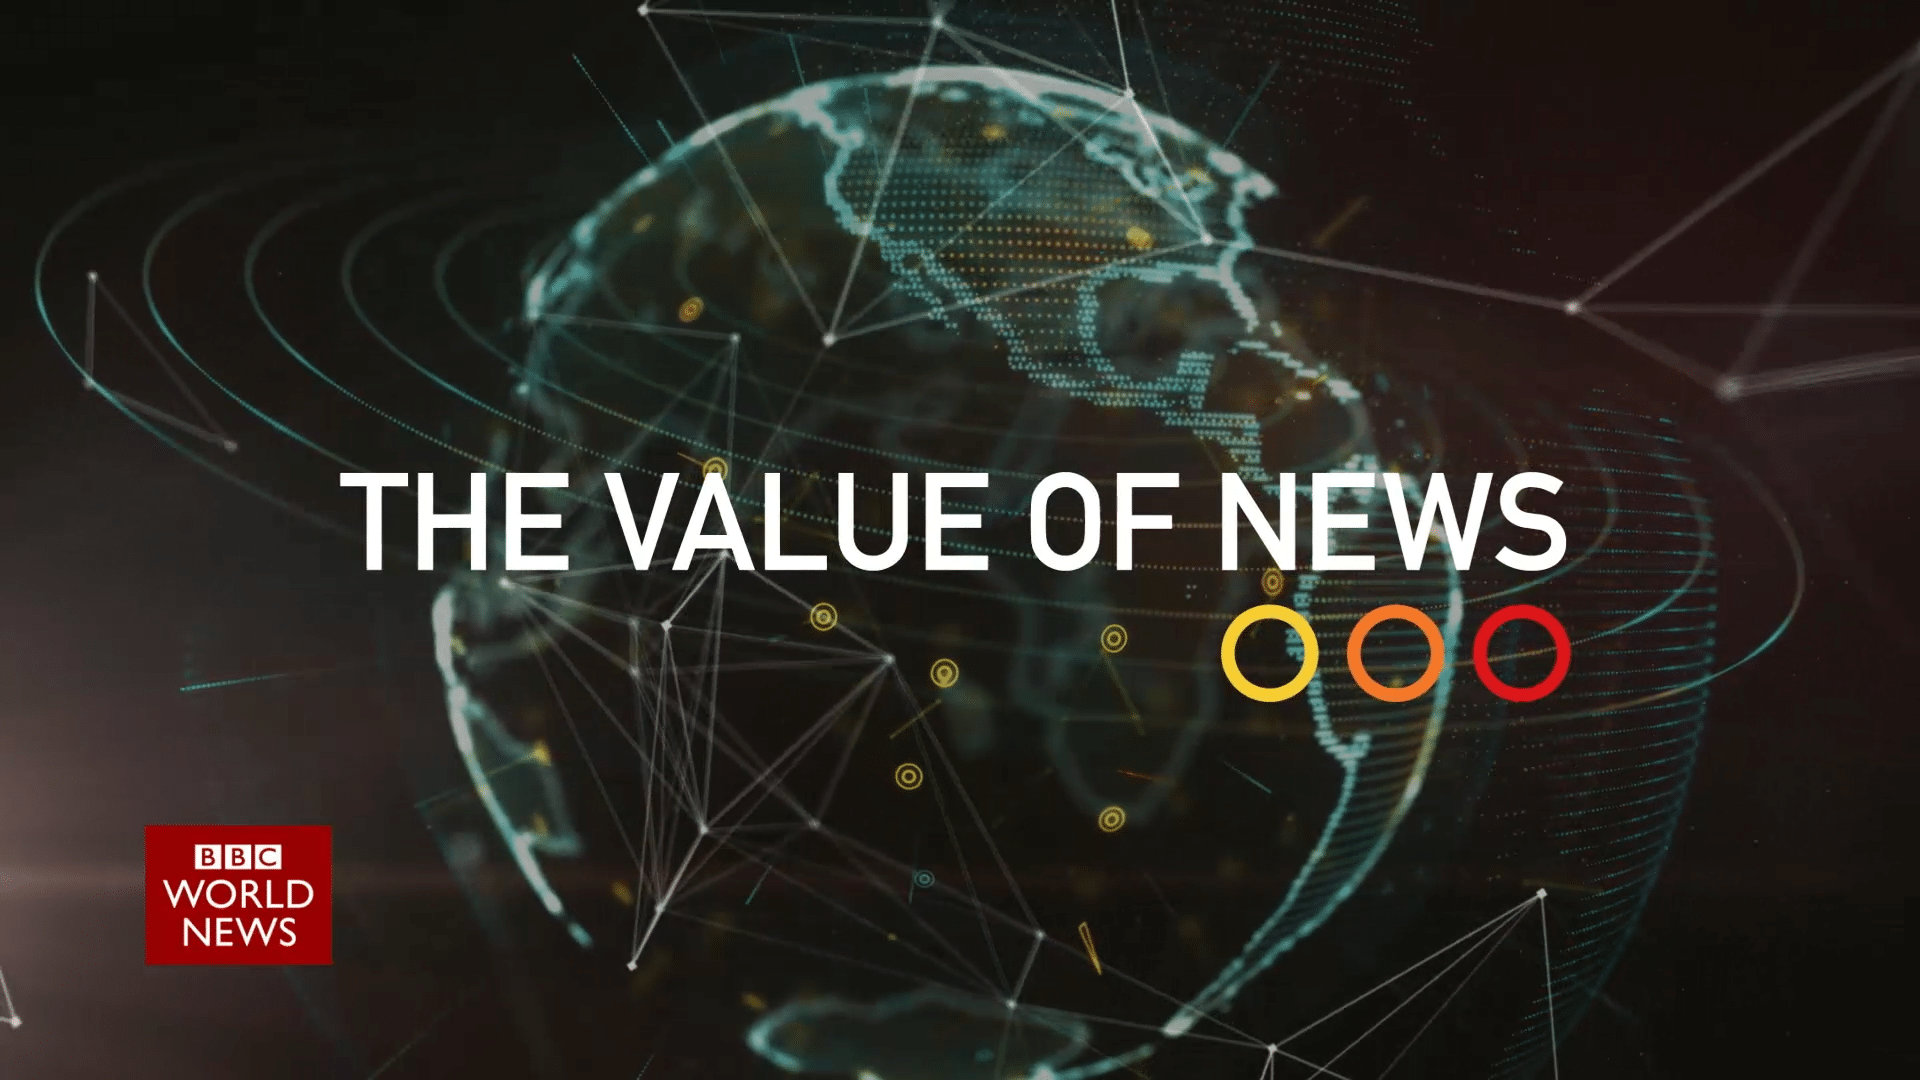 Animated Infographic - the value of new by BBC image of world